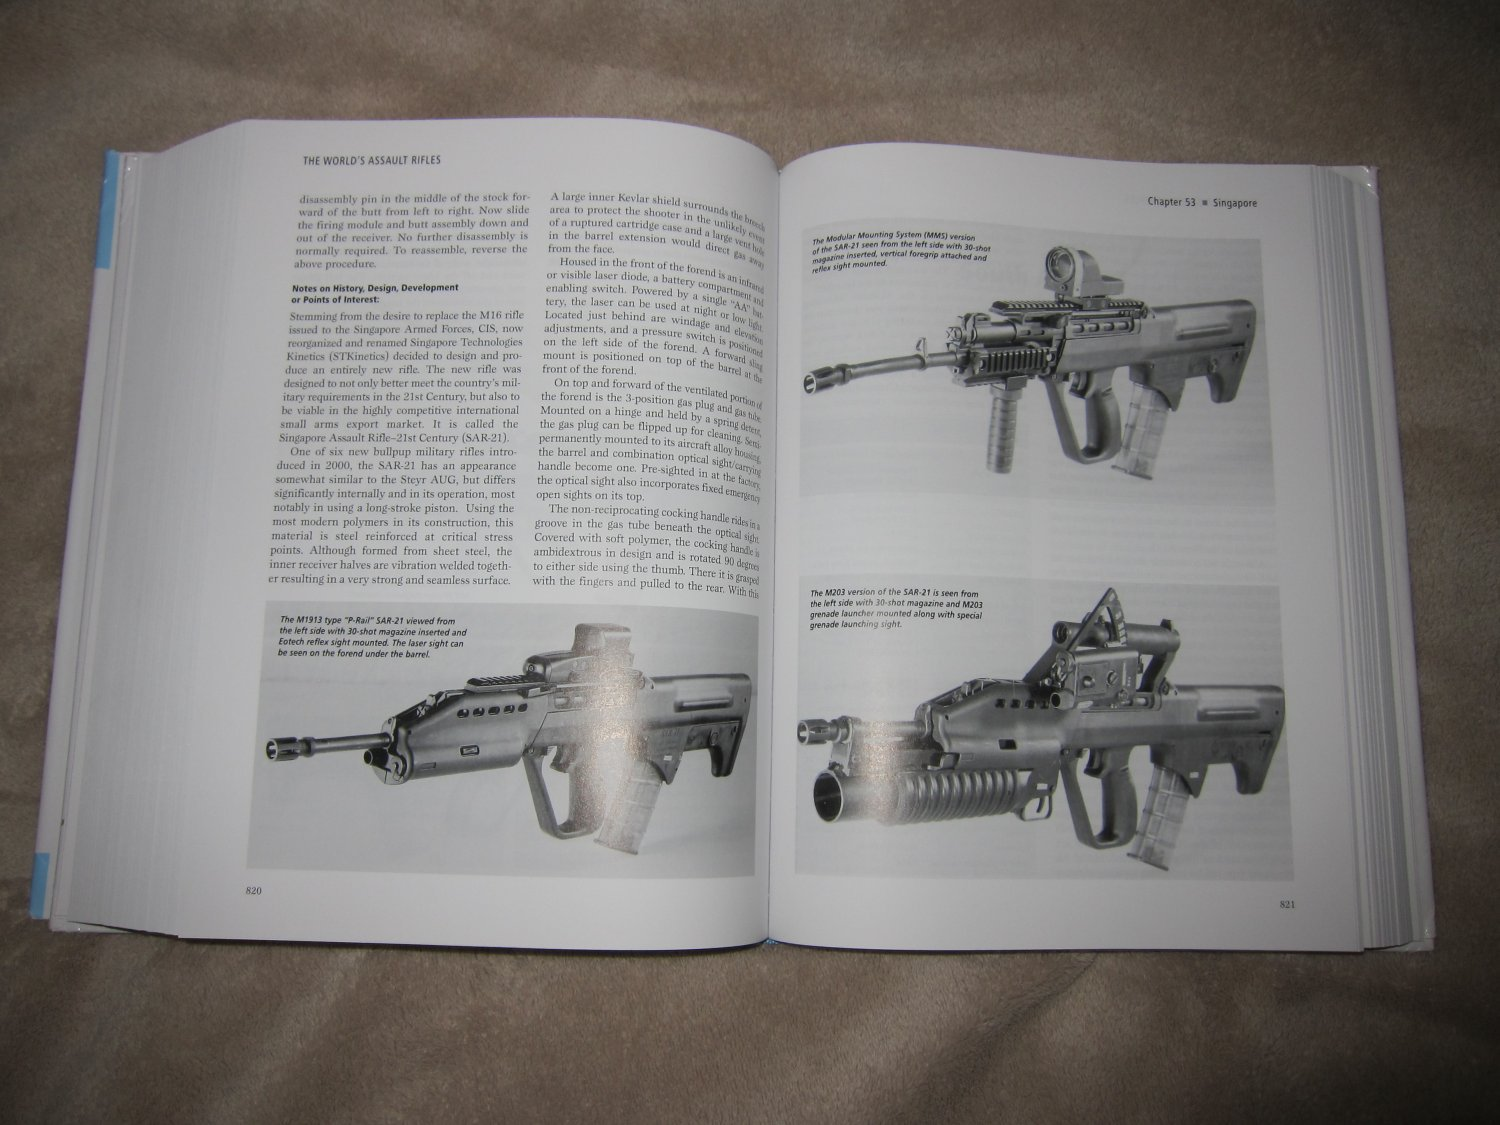 Assault Rifles of the World Book Gary Paul Johnston 7 <!  :en  >The Worlds Assault Rifles: Best and Most Complete Book on Military Infantry Assault Rifles (and Battle Rifles) Ever Written?  DefenseReview (DR) Highly Recommends It!<!  :  >